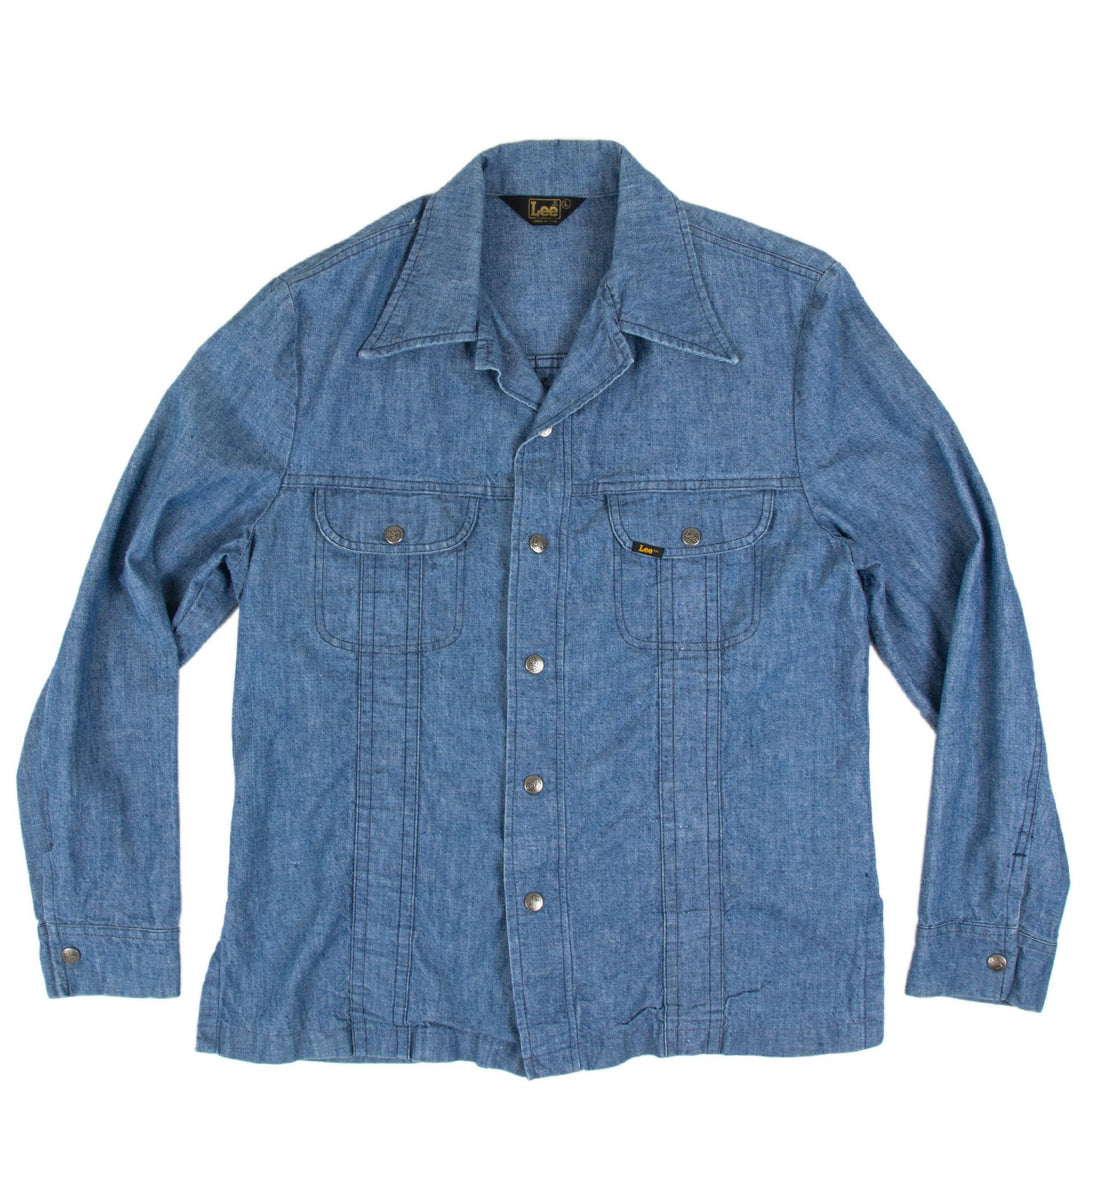 Vintage Chore Lee Men's Chambray Shirt - Vintage: Men's - Iron and Resin